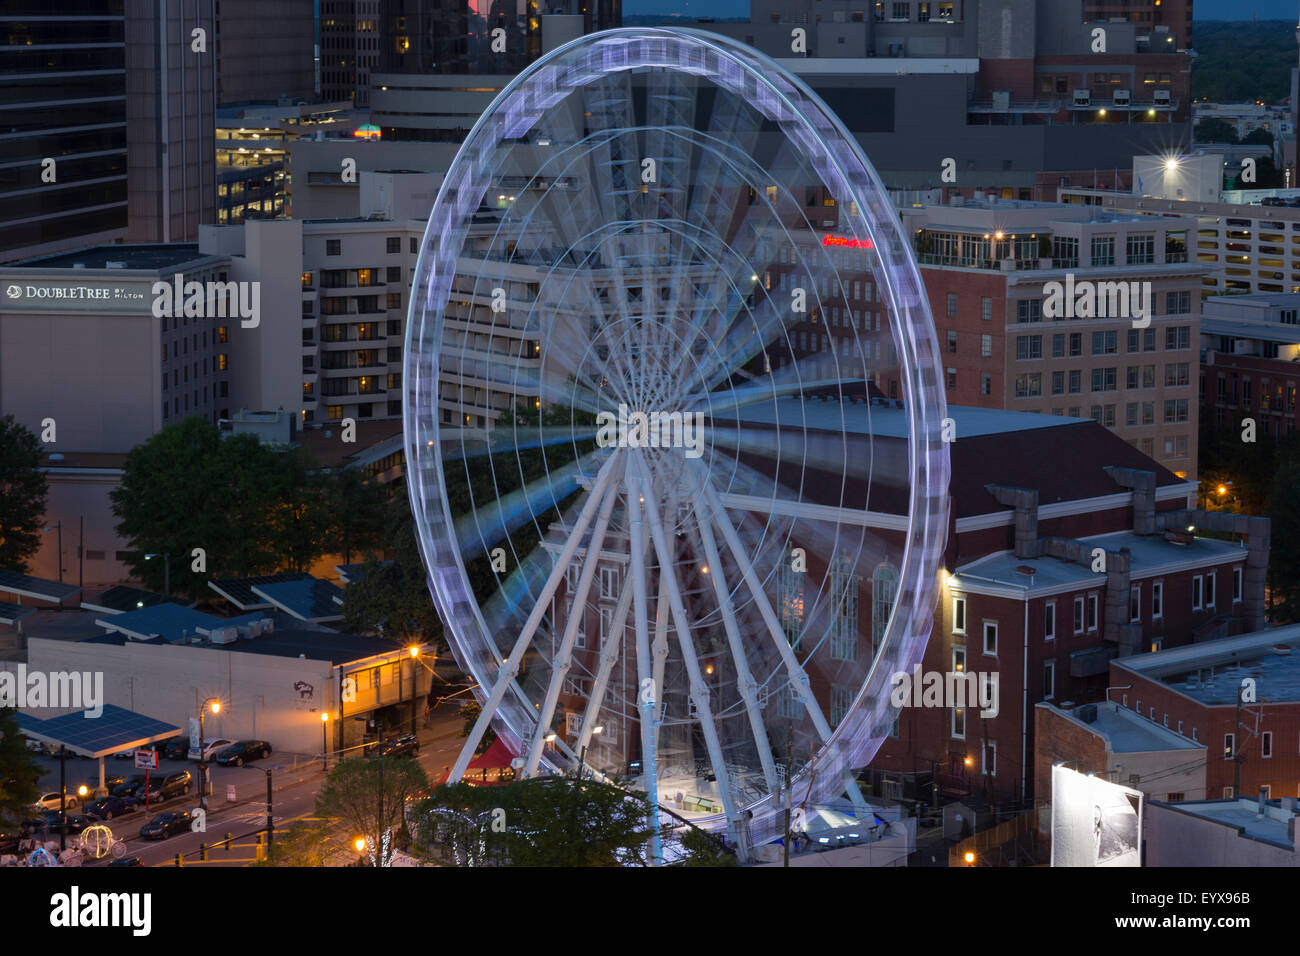 My family and I took Skyview Atlanta photos